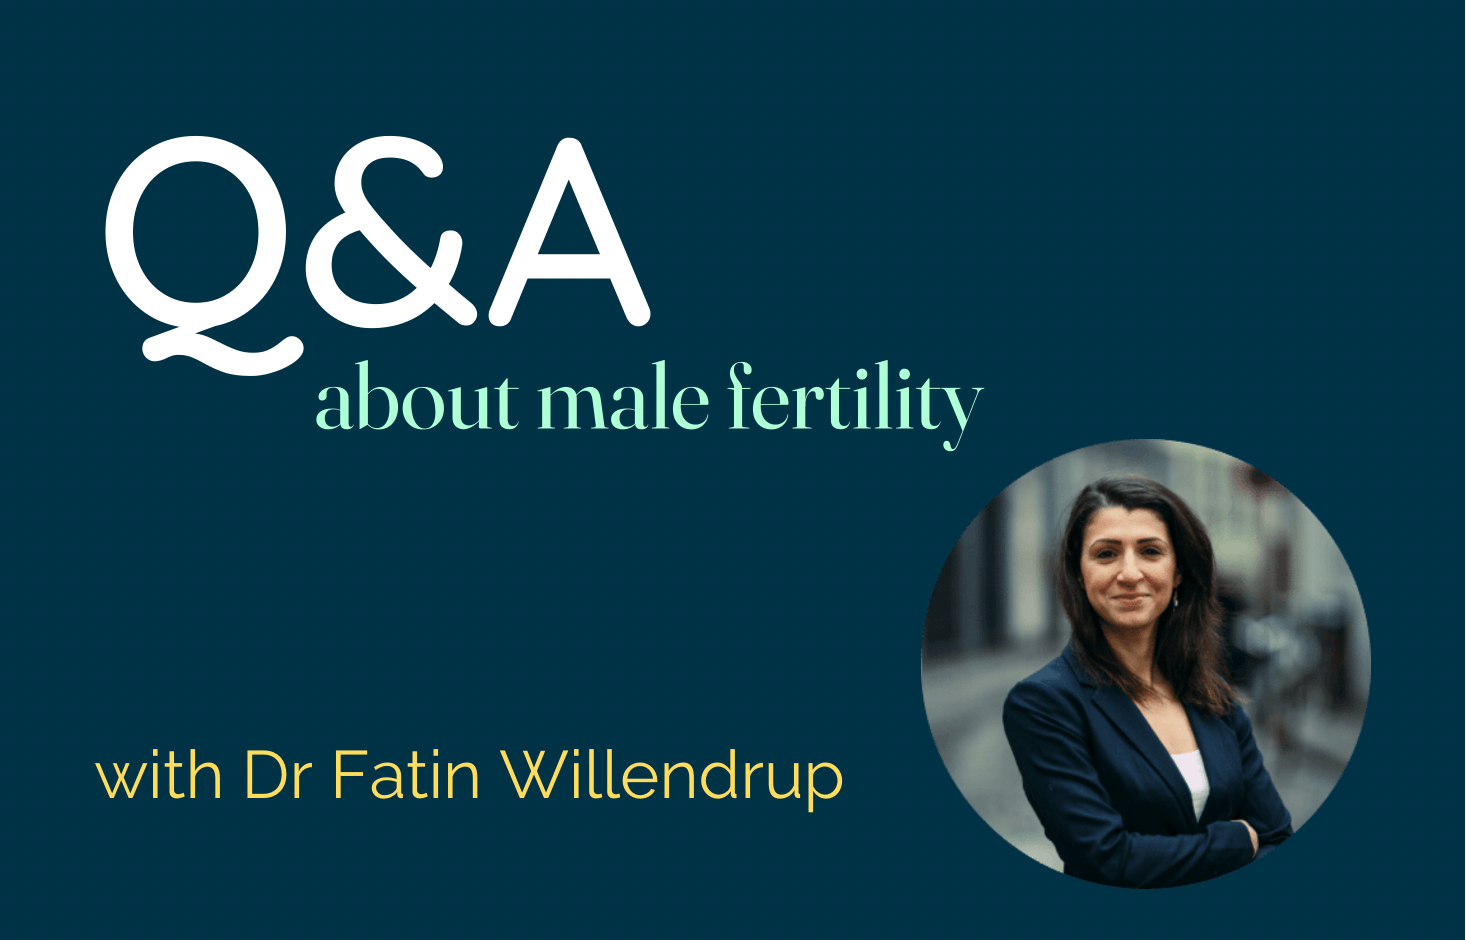 Q&A about male fertility with Dr. Fatin